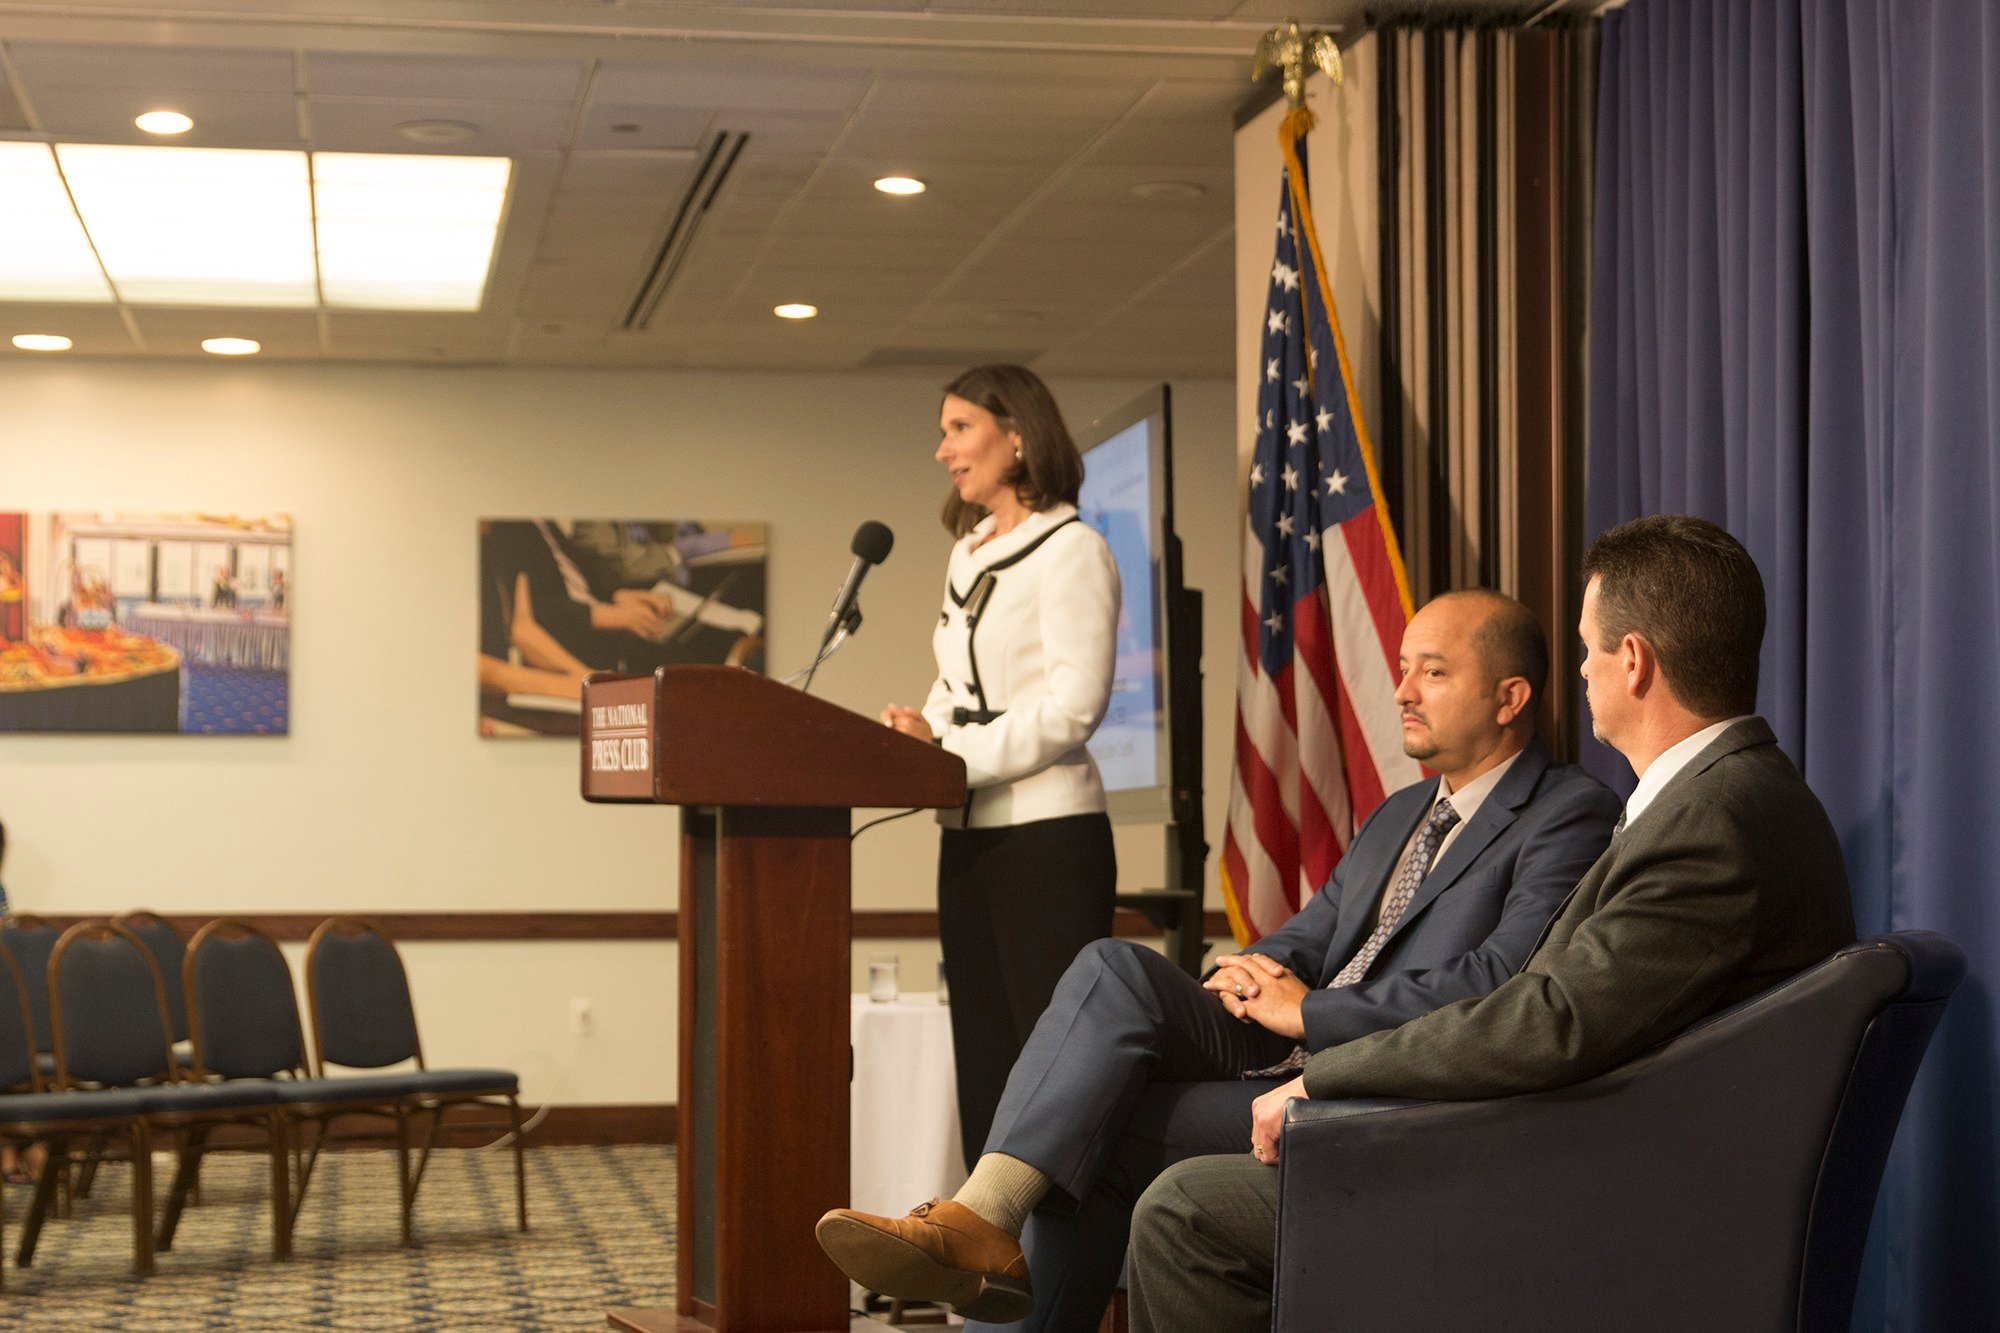 Arizona fared poorly on the National Safety Council's national new national report card on safety. Council President Deborah Hersman speaks at the release of the report with, from left, Rodrigo Garcia and Thomas Goeltz. (Source: Joe Gilmore/Cronkite News)